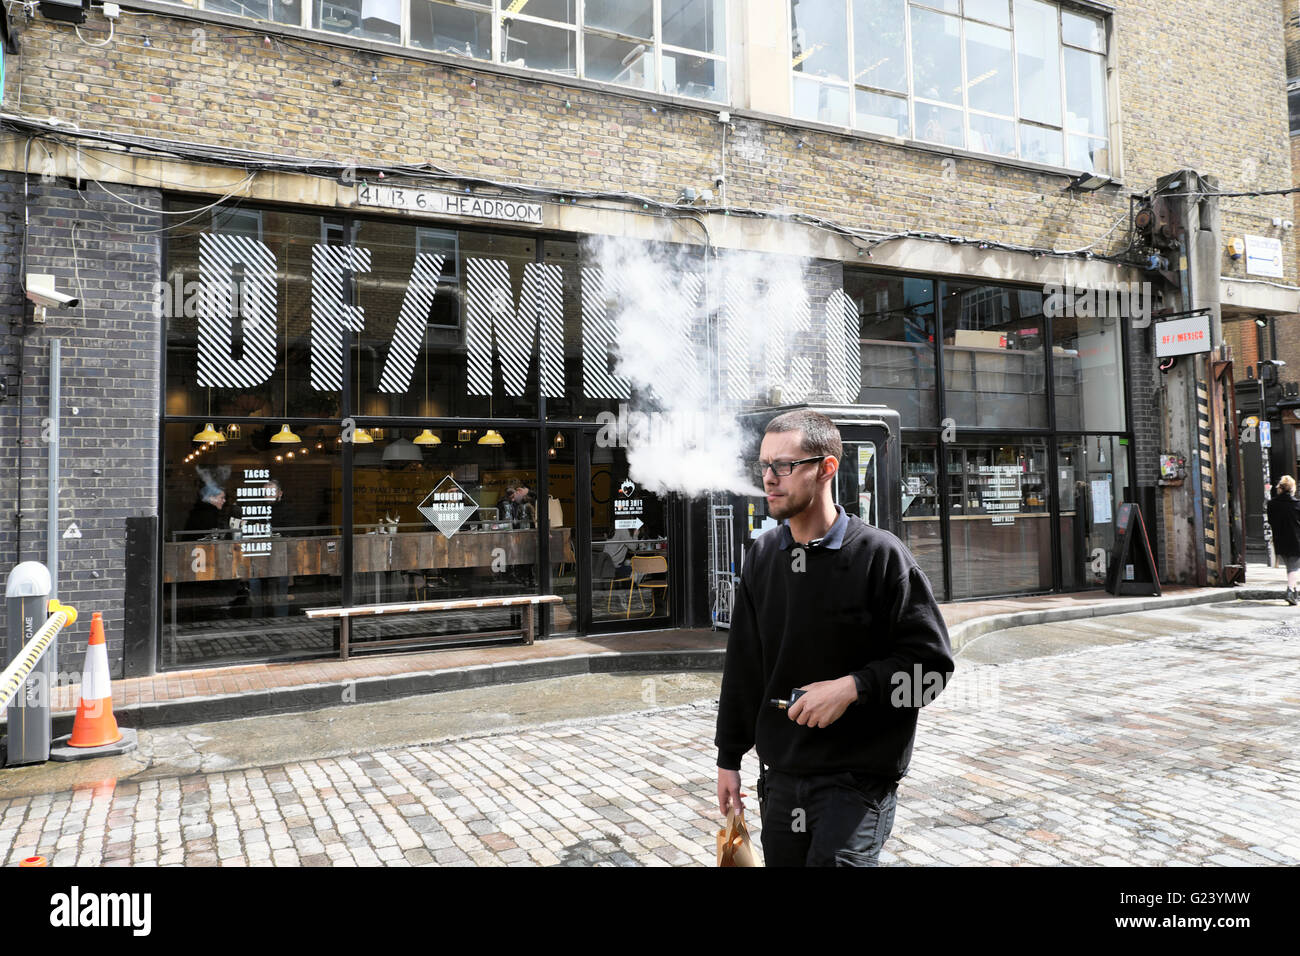 Man vaping walking by DF/Mexico Mexican restaurant on Dray Walk & Hanbury Street near Brick Lane in East London - Stock Image